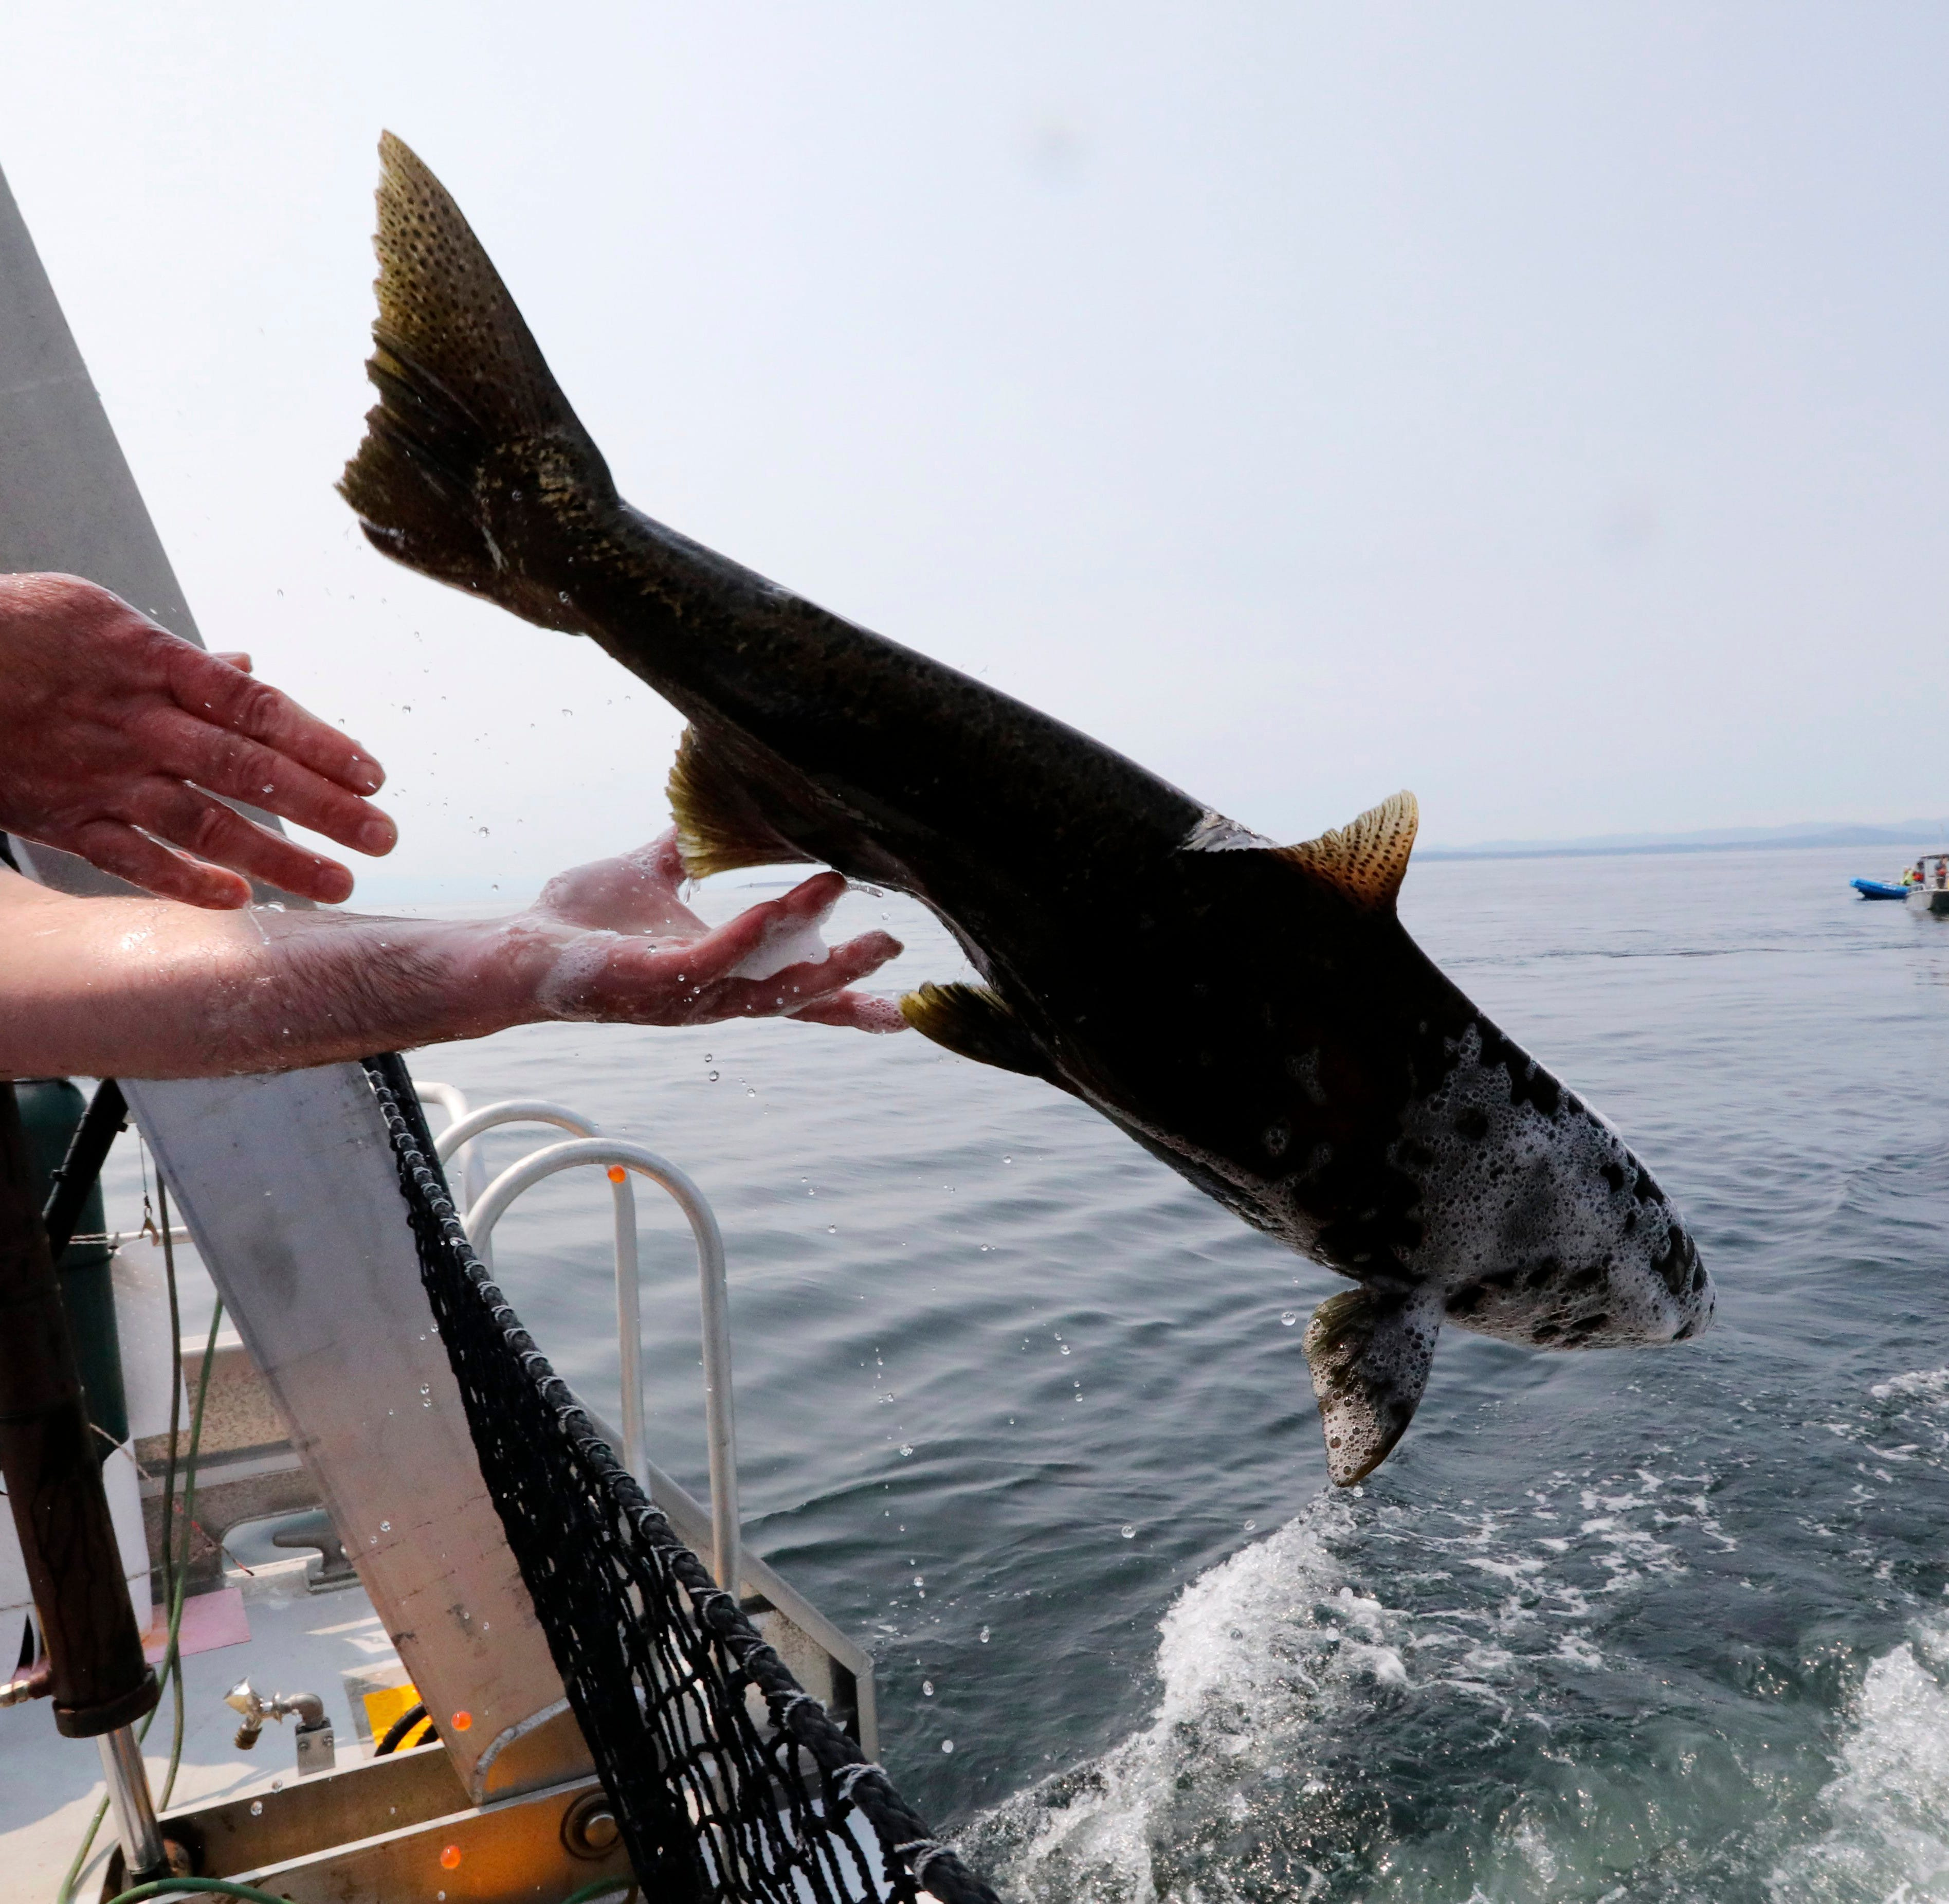 Live salmon released for ailing orca, but she doesn't eat it